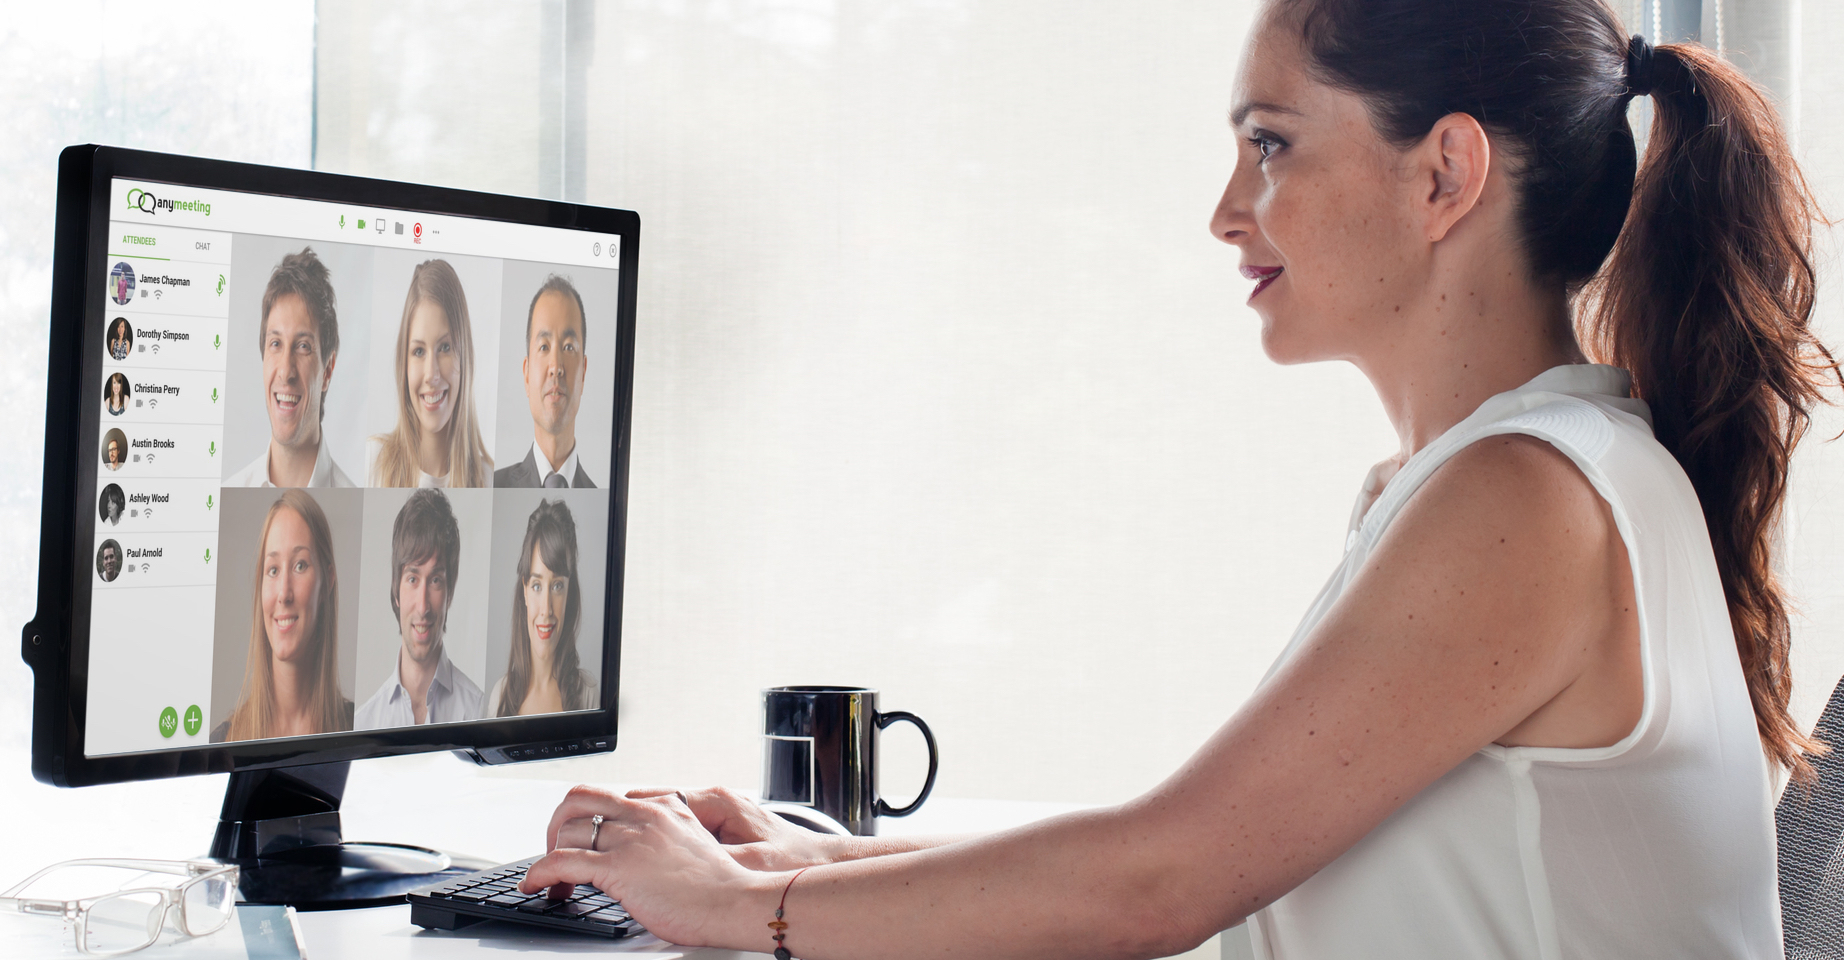 Anymeeting Video Conferencing Demo - Simple and easy video conferencing with no downloads